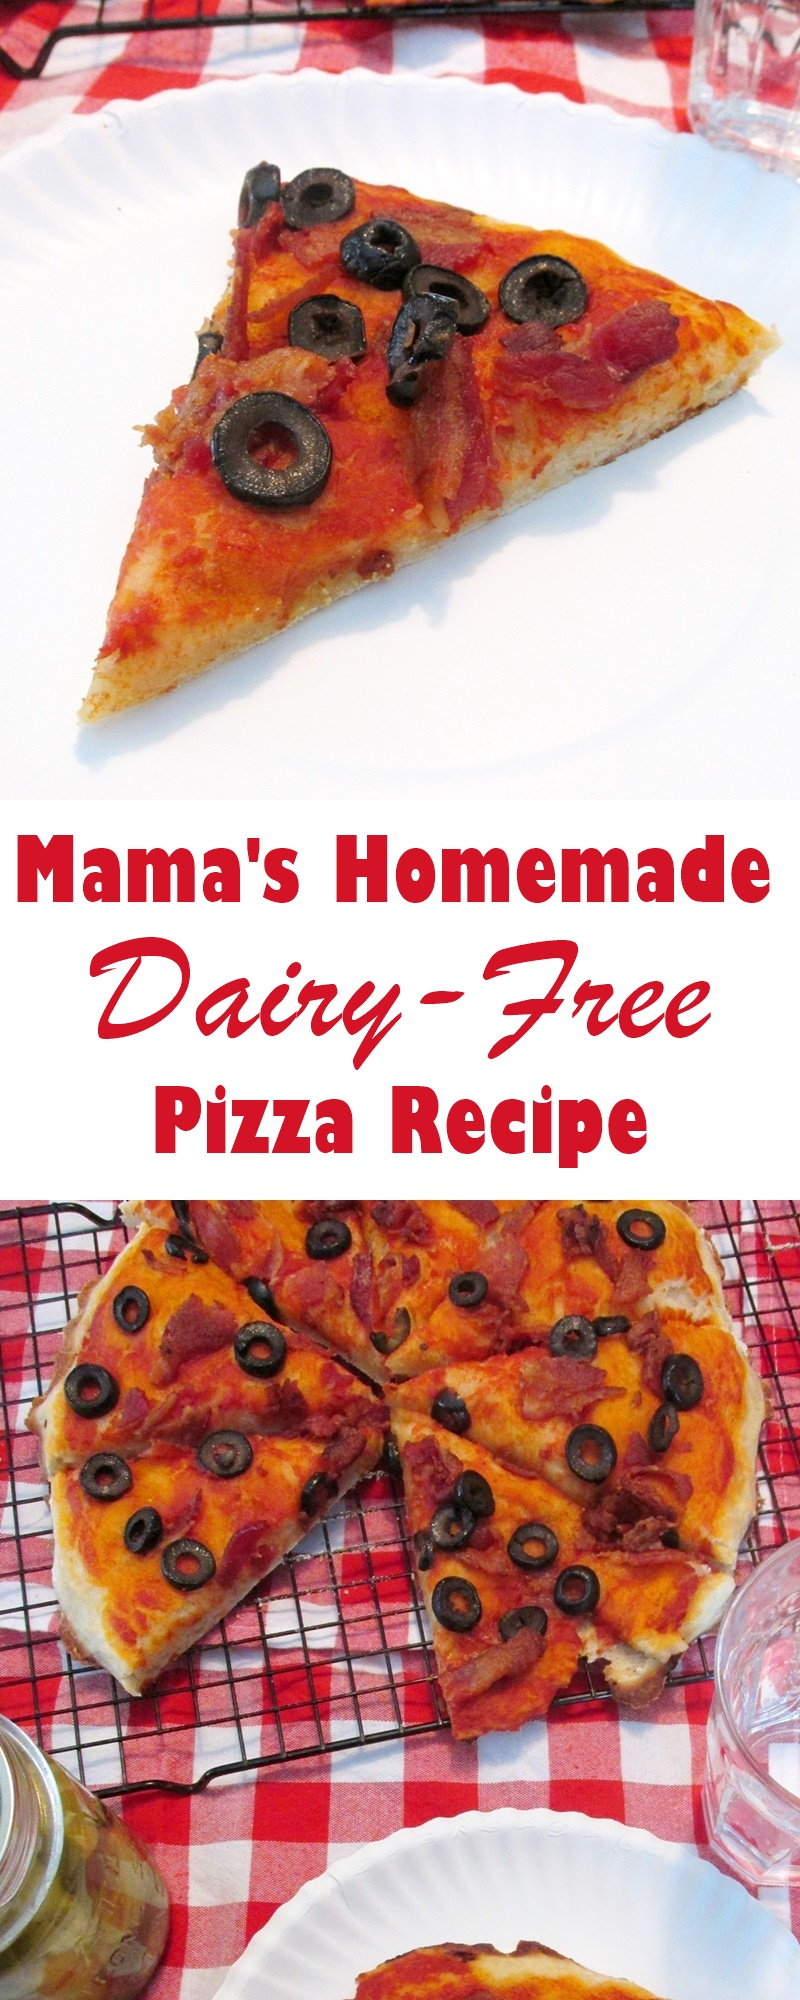 Mama's Dairy-Free Homemade Pizza Recipe (vegan optional) - with versatile from-scratch dough and super-easy sauce